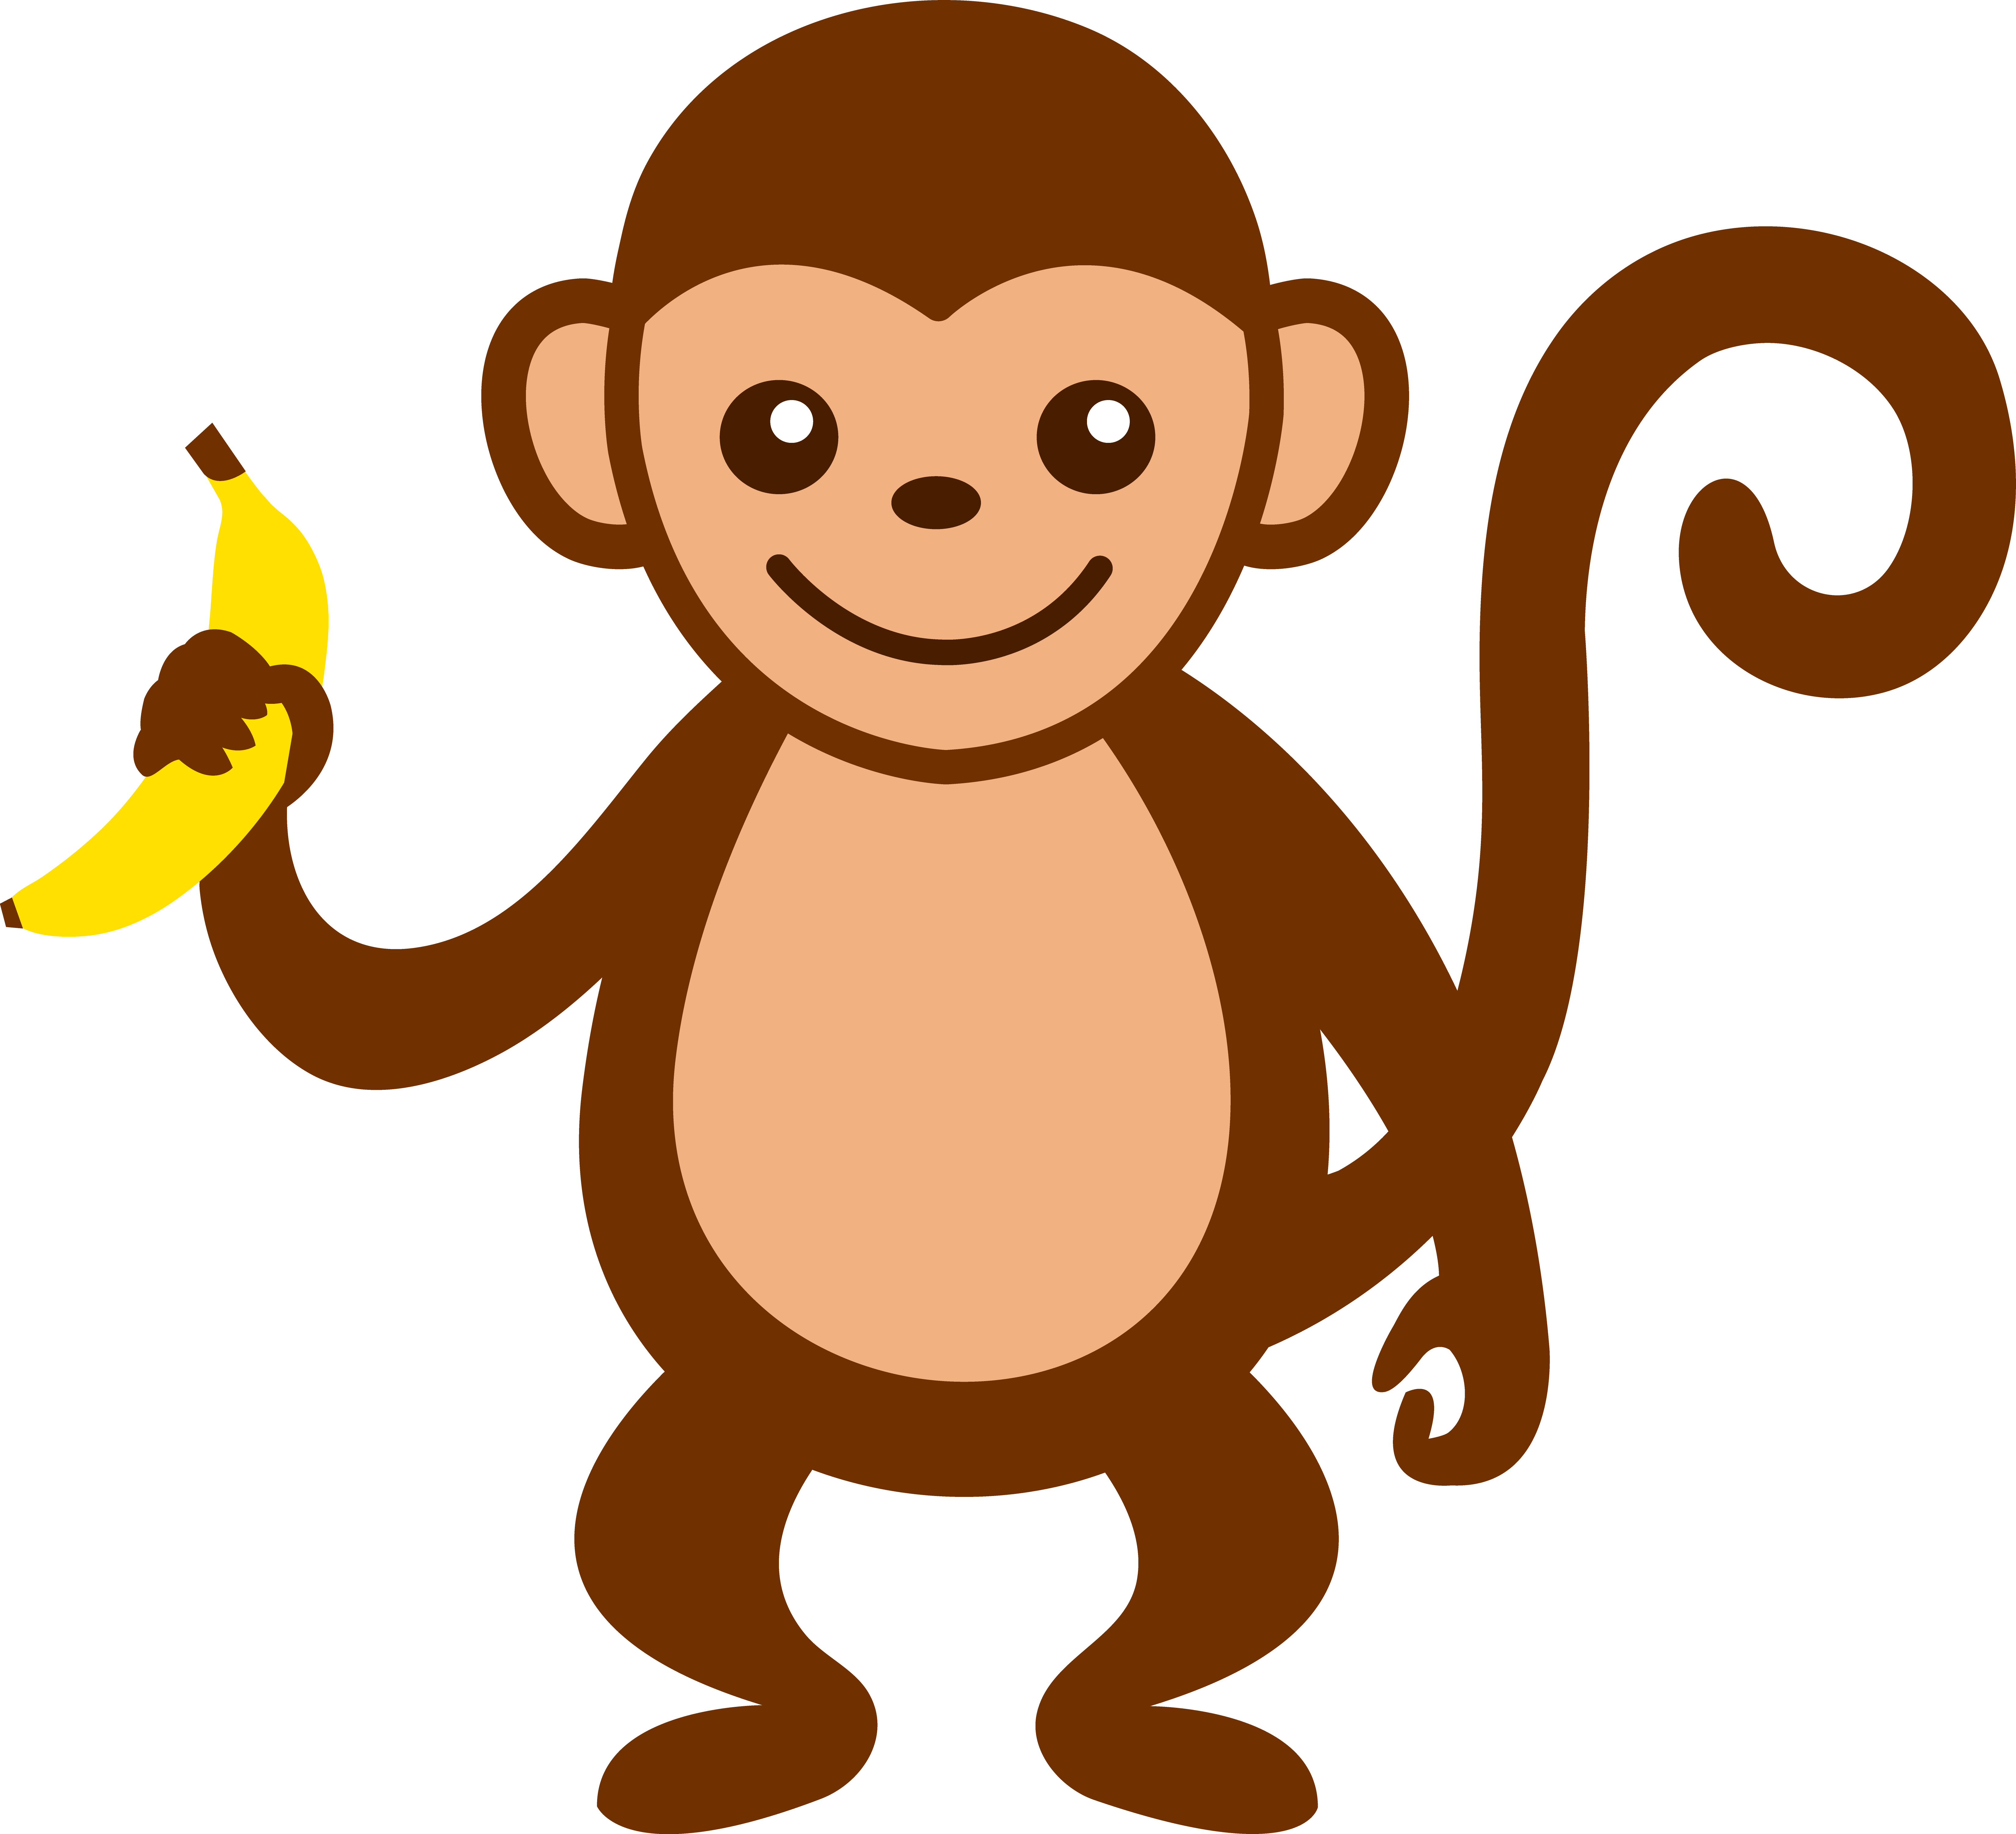 Monkey clipart png banner free download Monkey clipart png 9 » Clipart Station banner free download